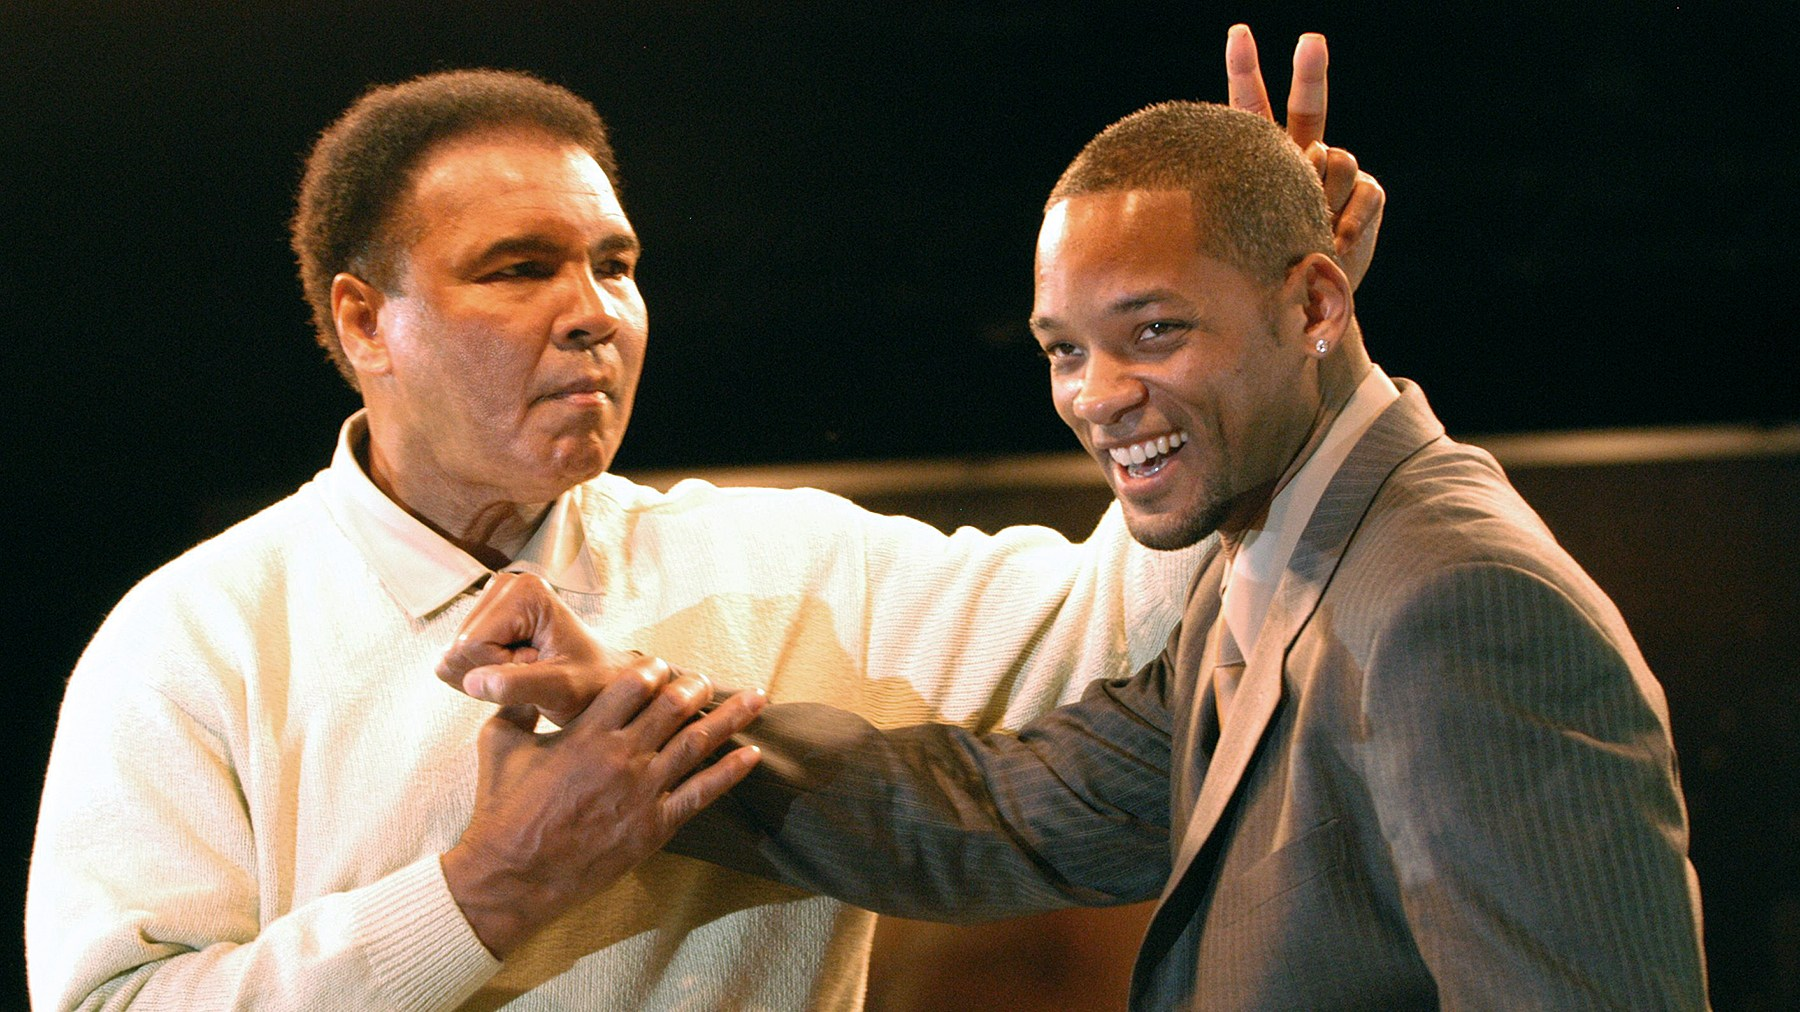 Muhammad Ali gestures behind the head of actor Will Smith at the Miami Art Basel Taschen book premiere of Ali's new book, 'GOAT - Greatest Of All Time' at the Miami Convention Center December 6, 2003 in Miami, Florida.